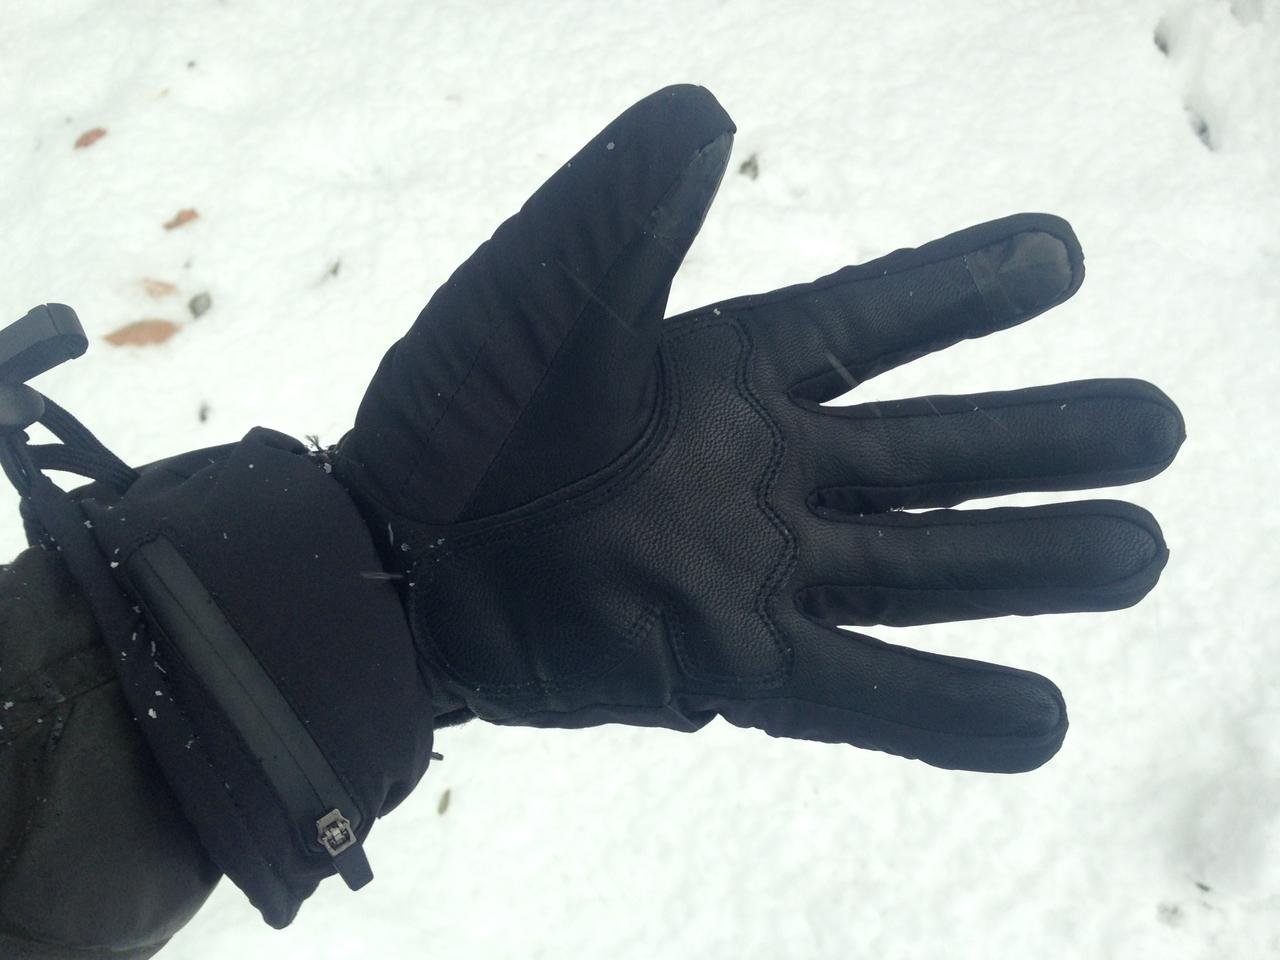 The Antelife G1 gloves feature goat leather palms and touchscreen-sensitive fingertip pads